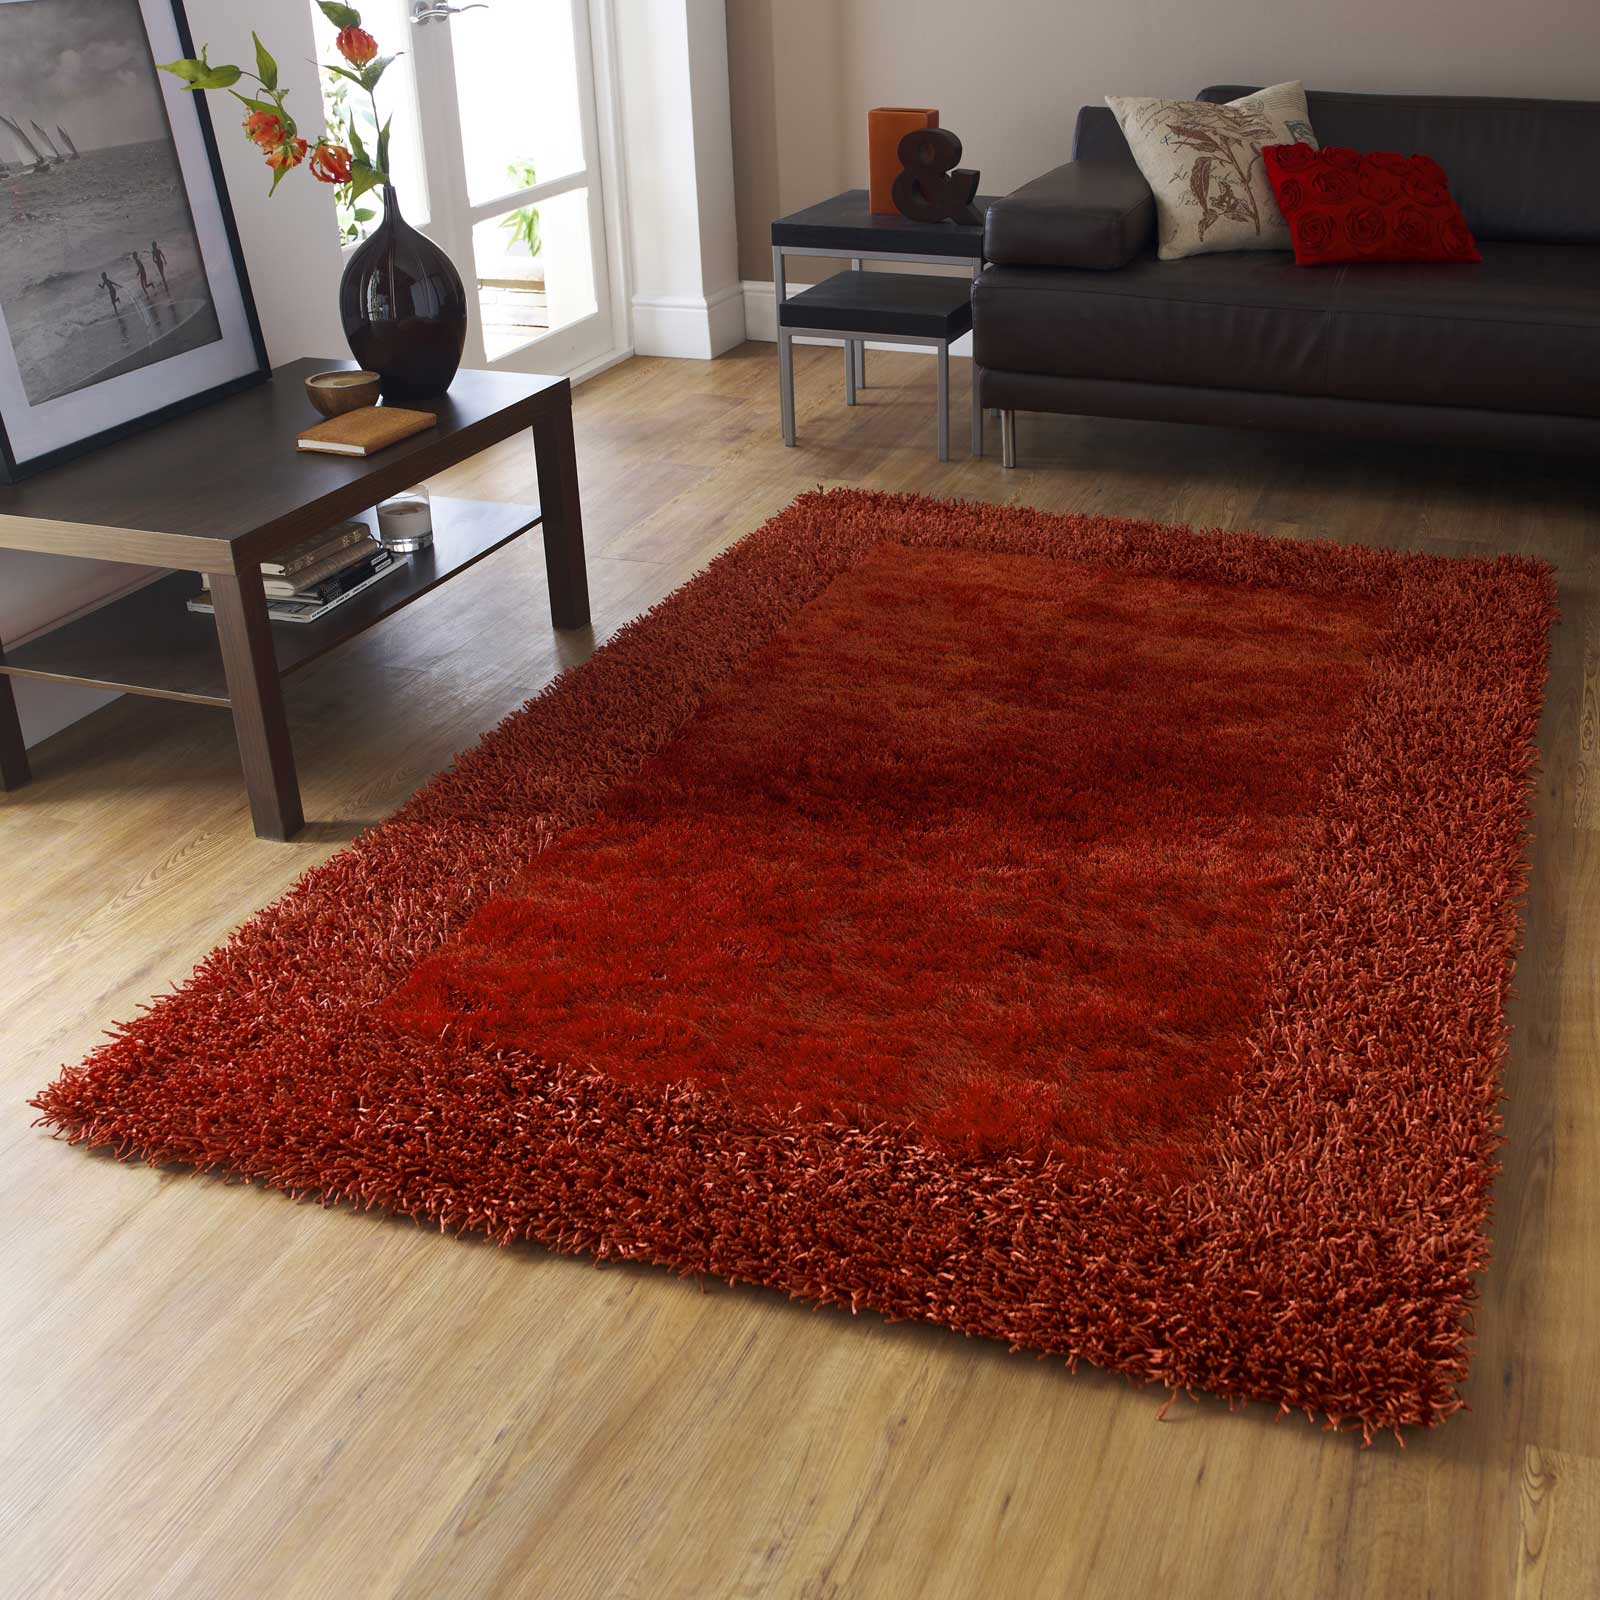 Superior Sable Two Shiney Shaggy Rugs In Burnt Orange